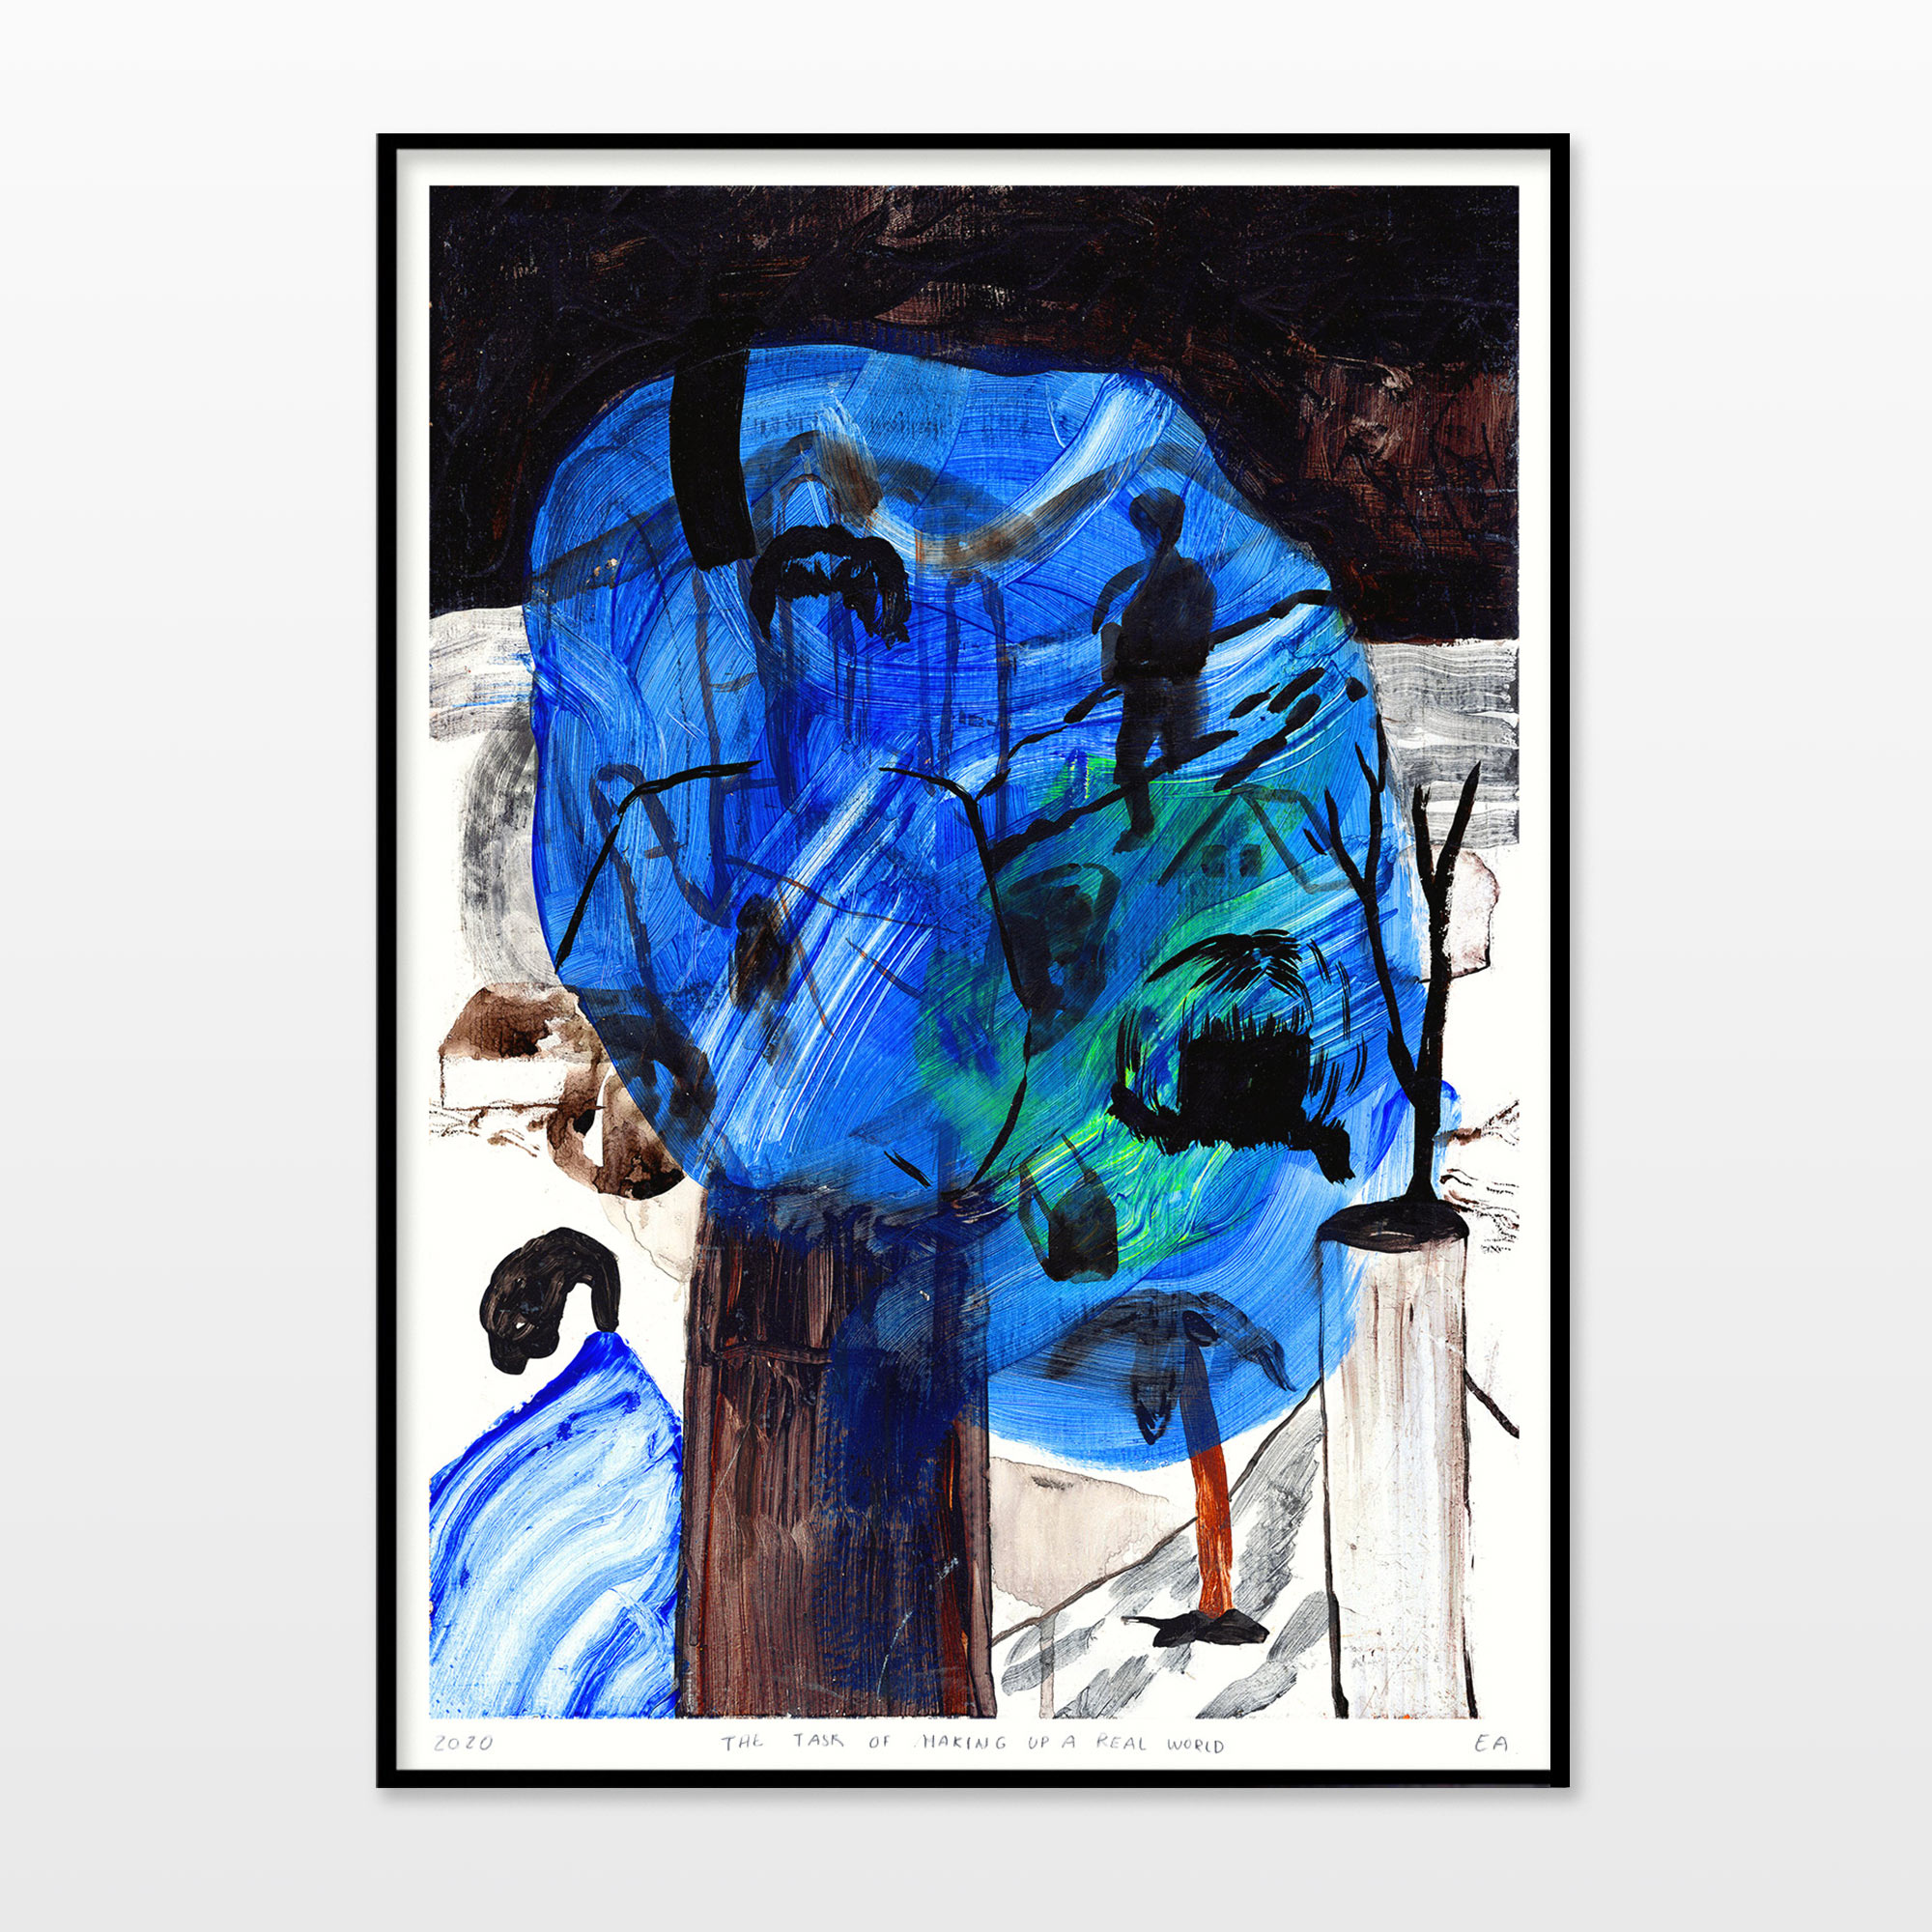 posters-prints, aesthetic, expressive, figurative, illustrative, landscape, animals, bodies, botany, nature, people, sky, wildlife, black, blue, brown, green, ink, paper, beautiful, danish, design, forest, interior, interior-design, mountains, nordic, plants, posters, pretty, scandinavien, Buy original high quality art. Paintings, drawings, limited edition prints & posters by talented artists.